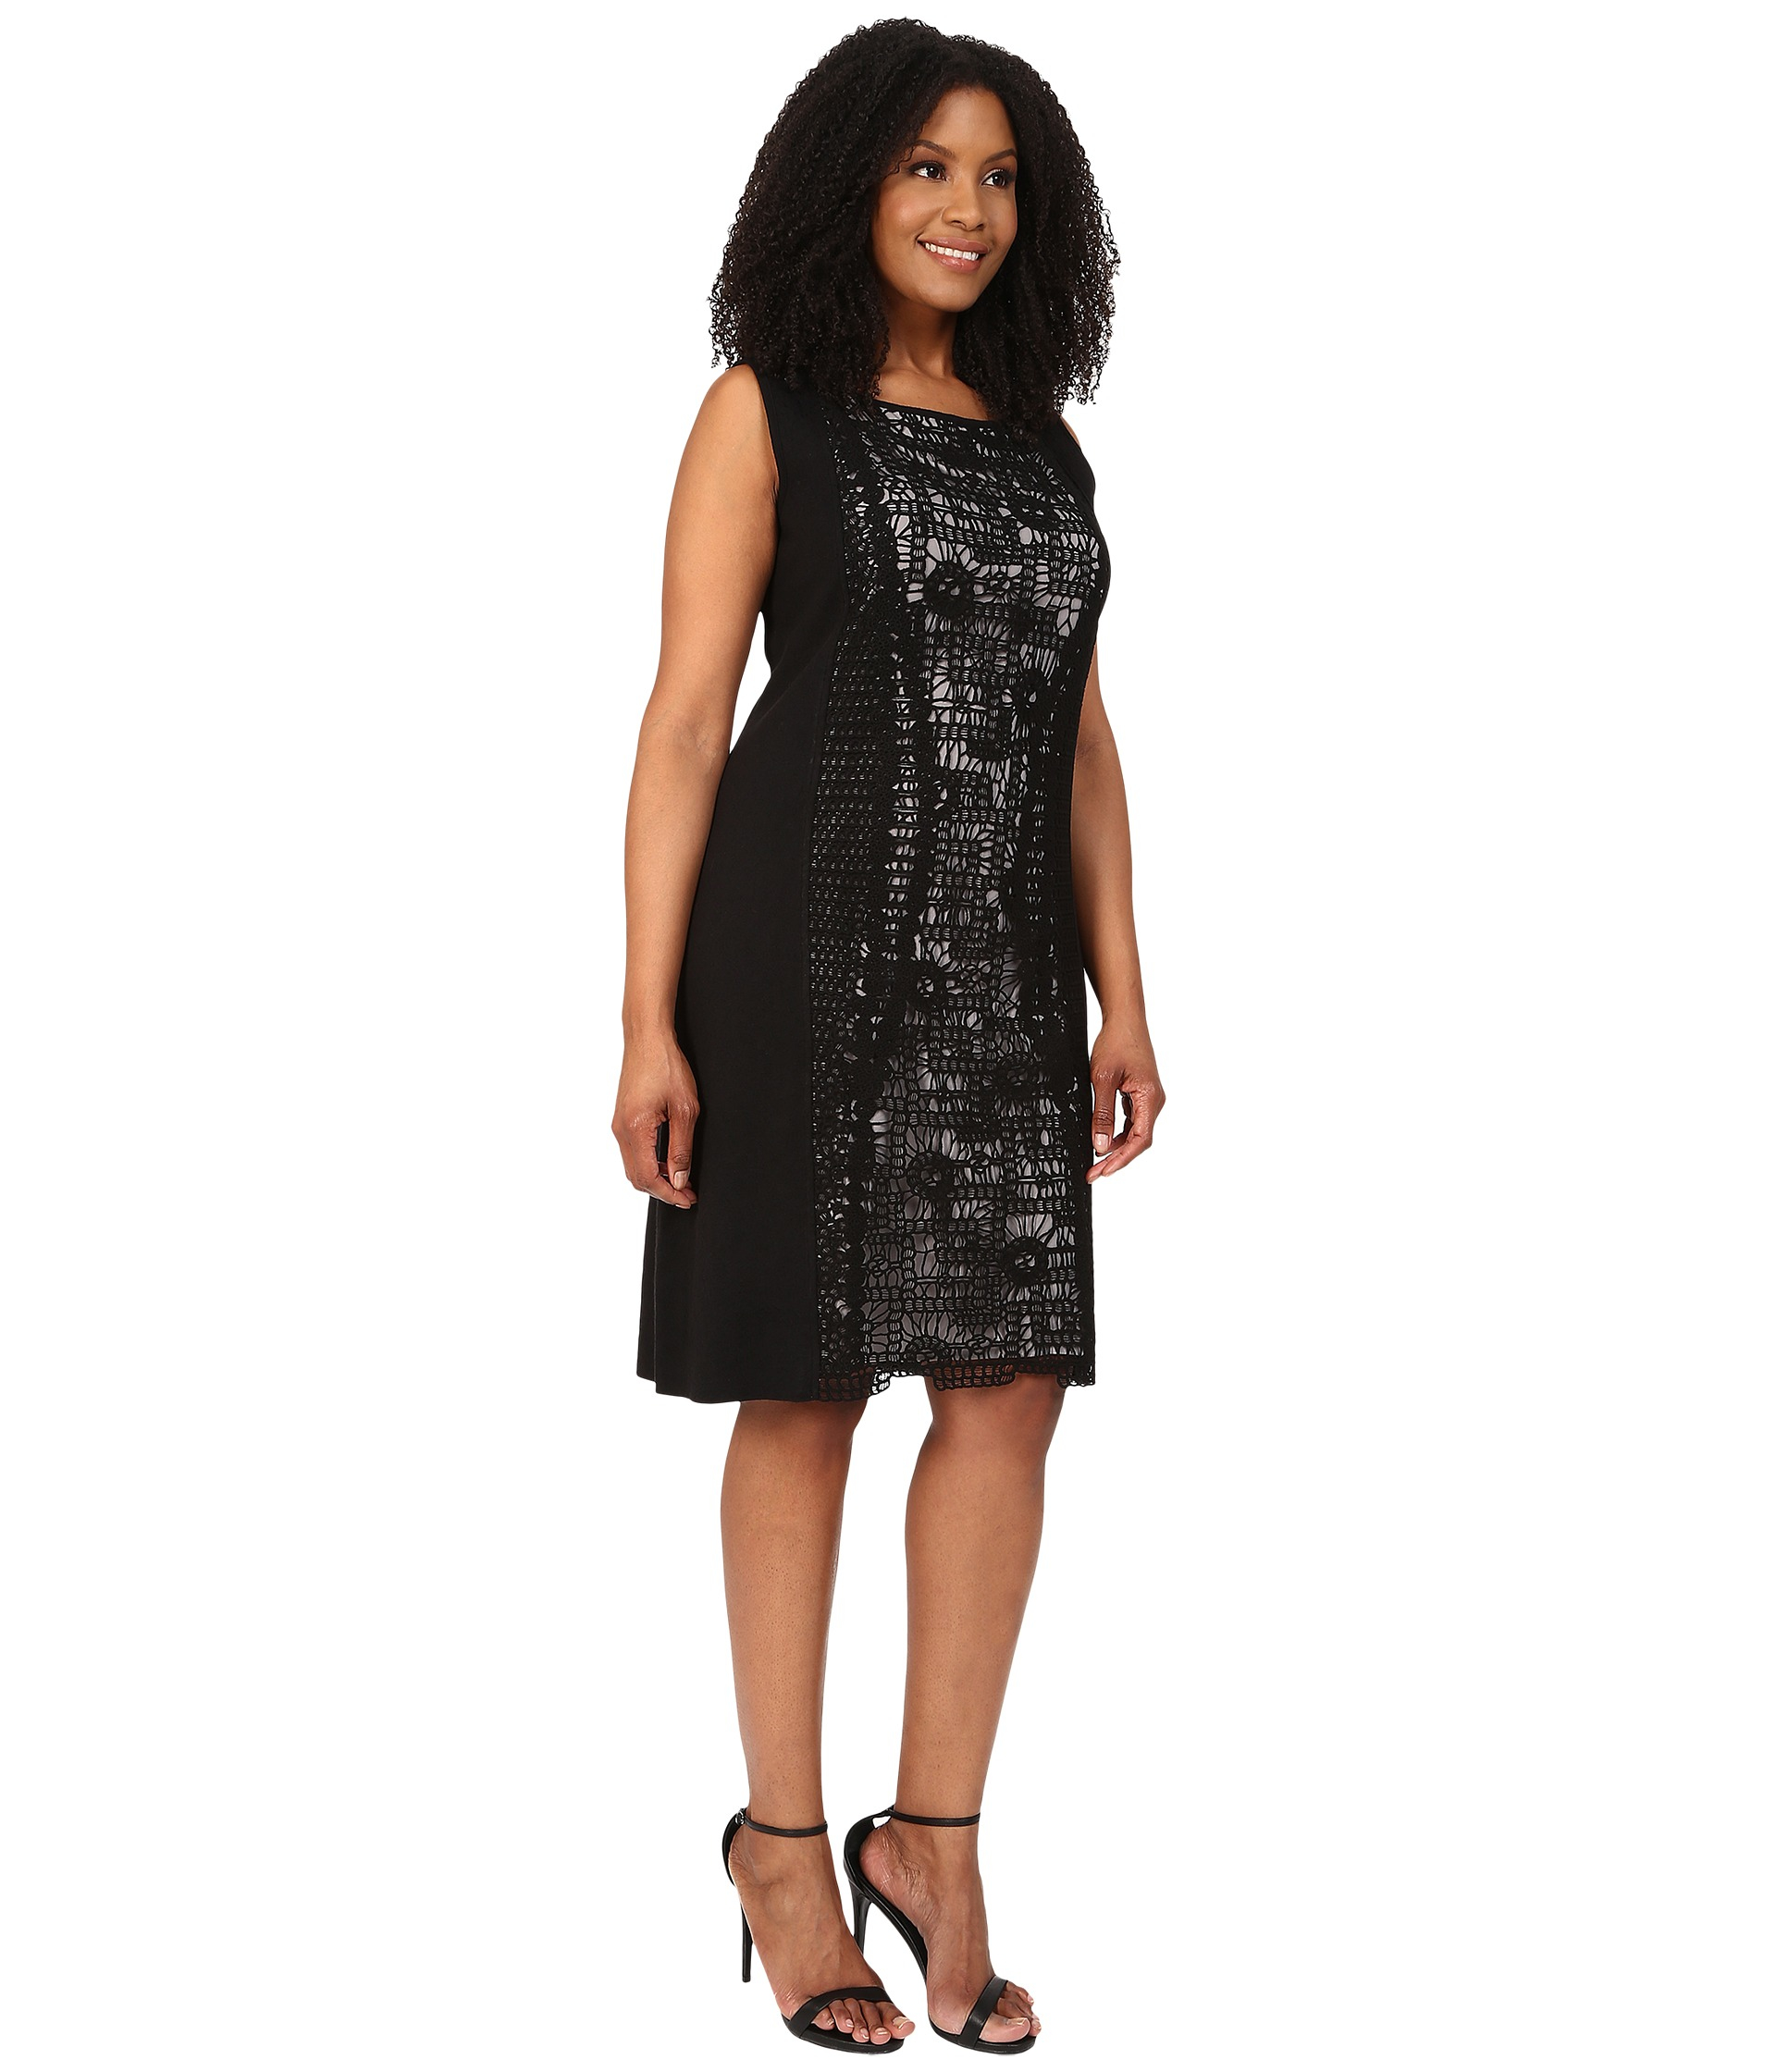 Lyst - NIC+ZOE Plus Size Layered Lace Dress in Black